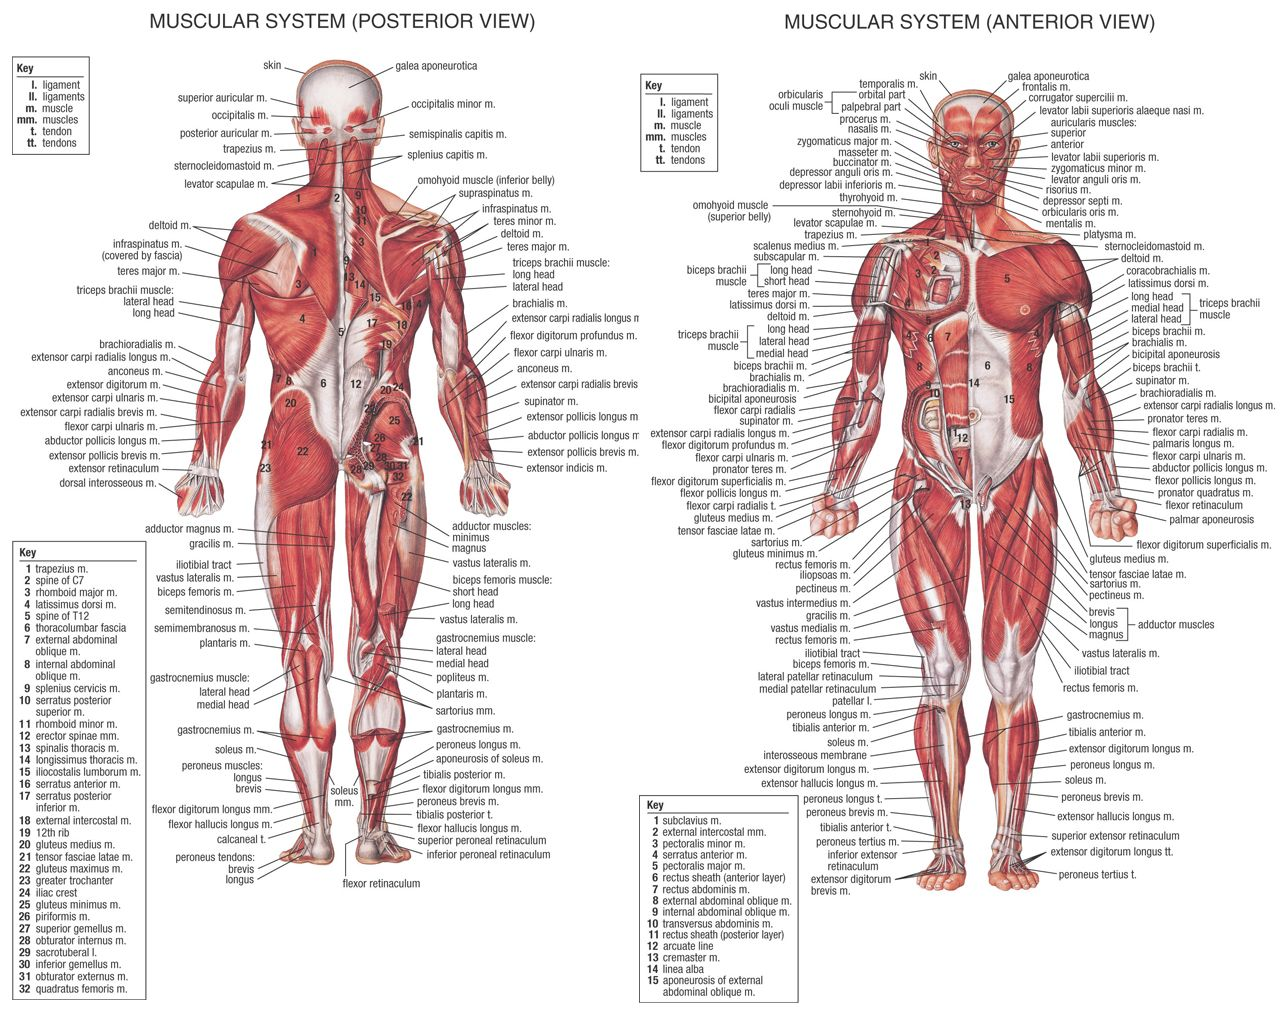 human anatomy diagram. our exploration human anatomy muscles, Muscles